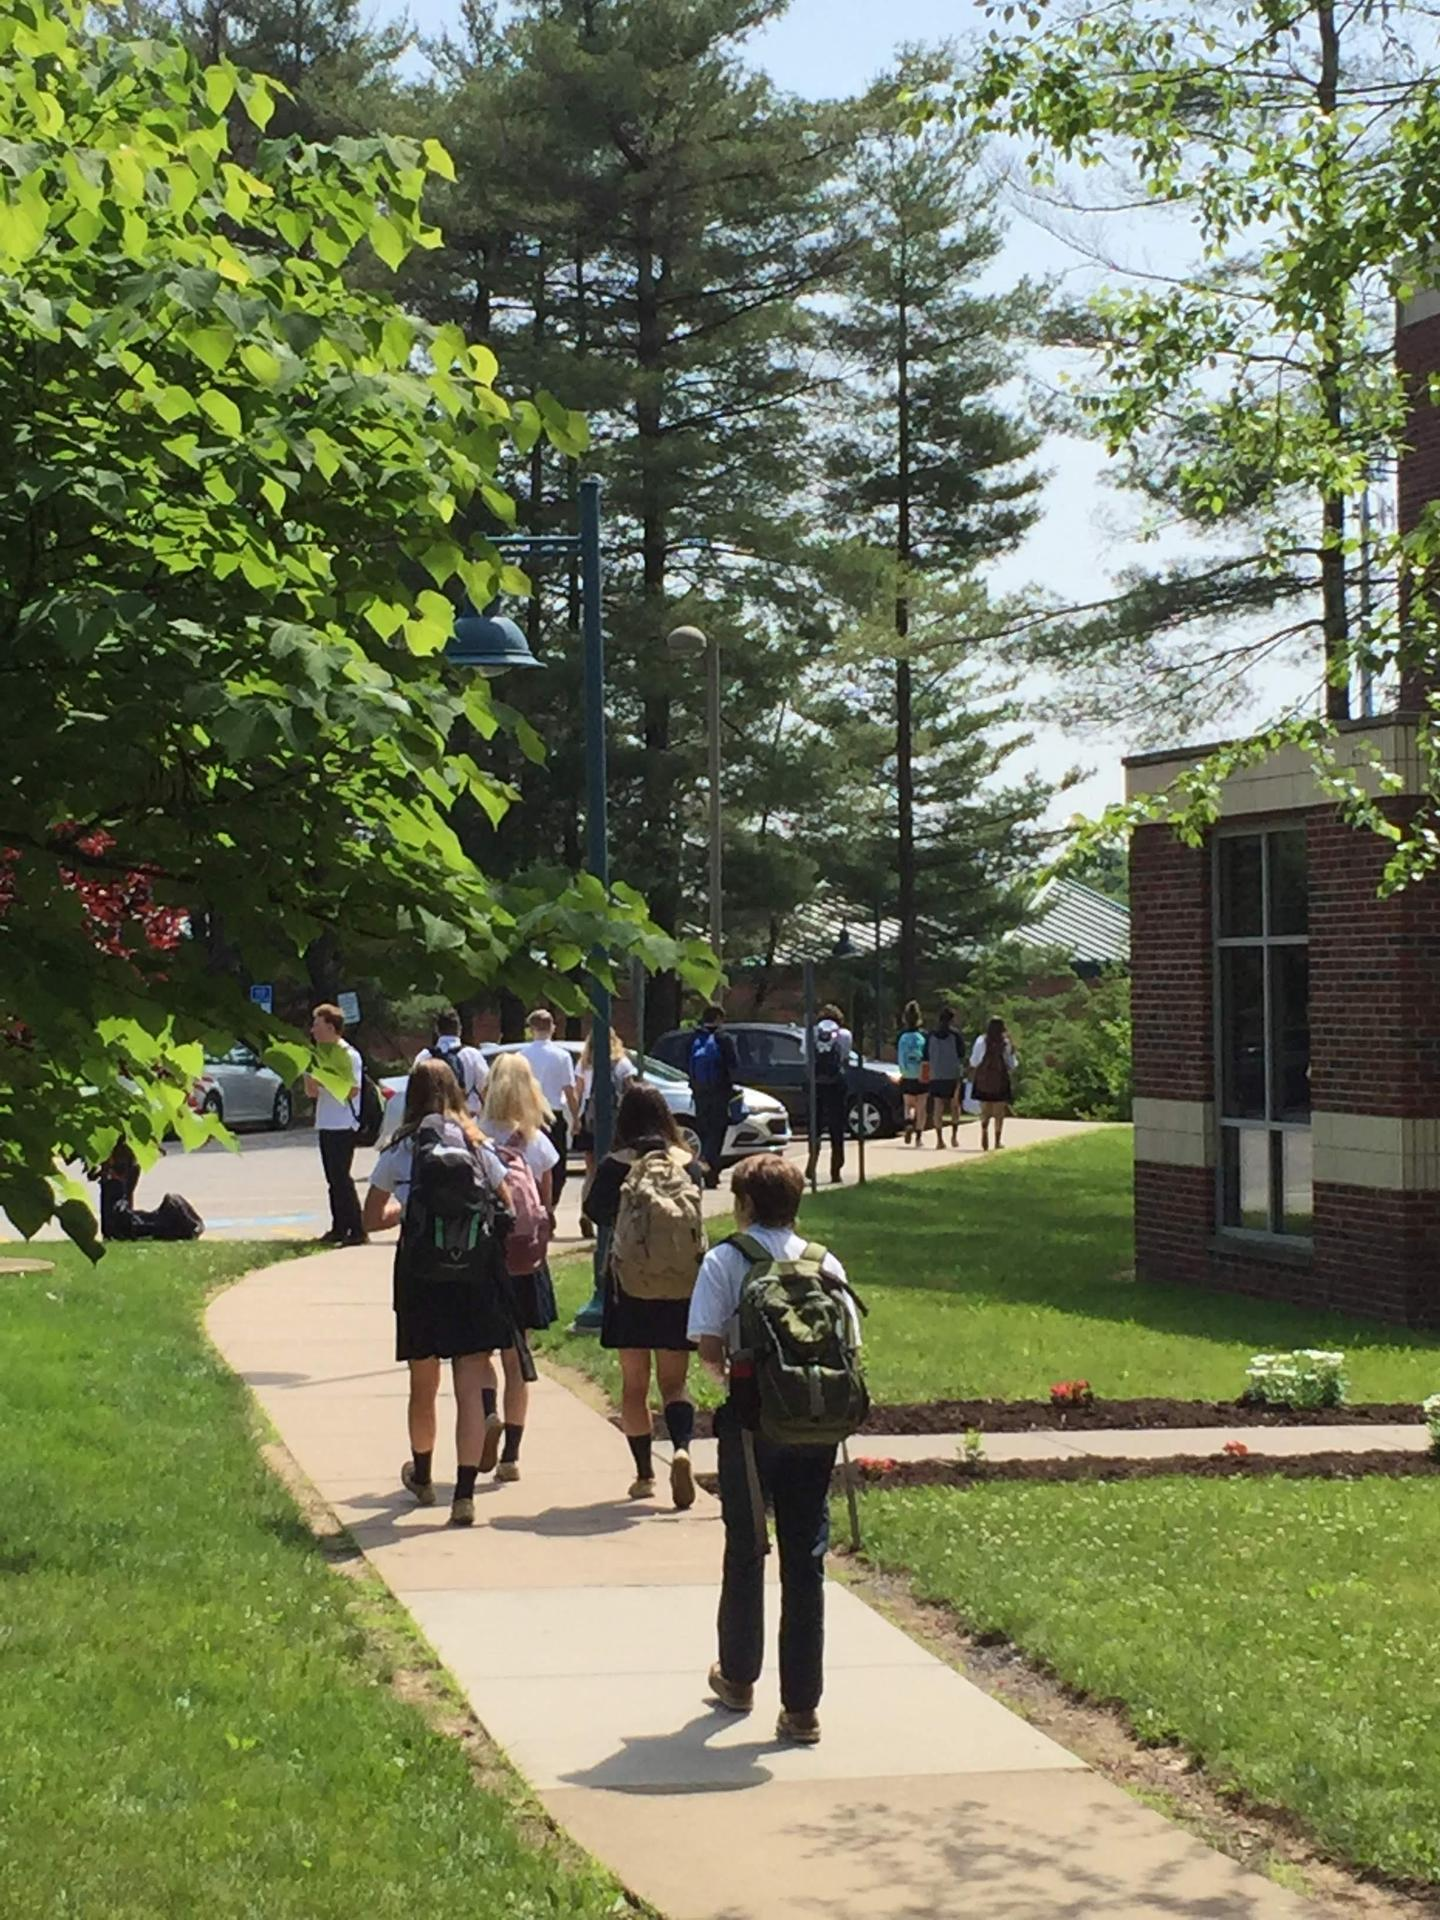 Students leaving campus on a sunny spring day